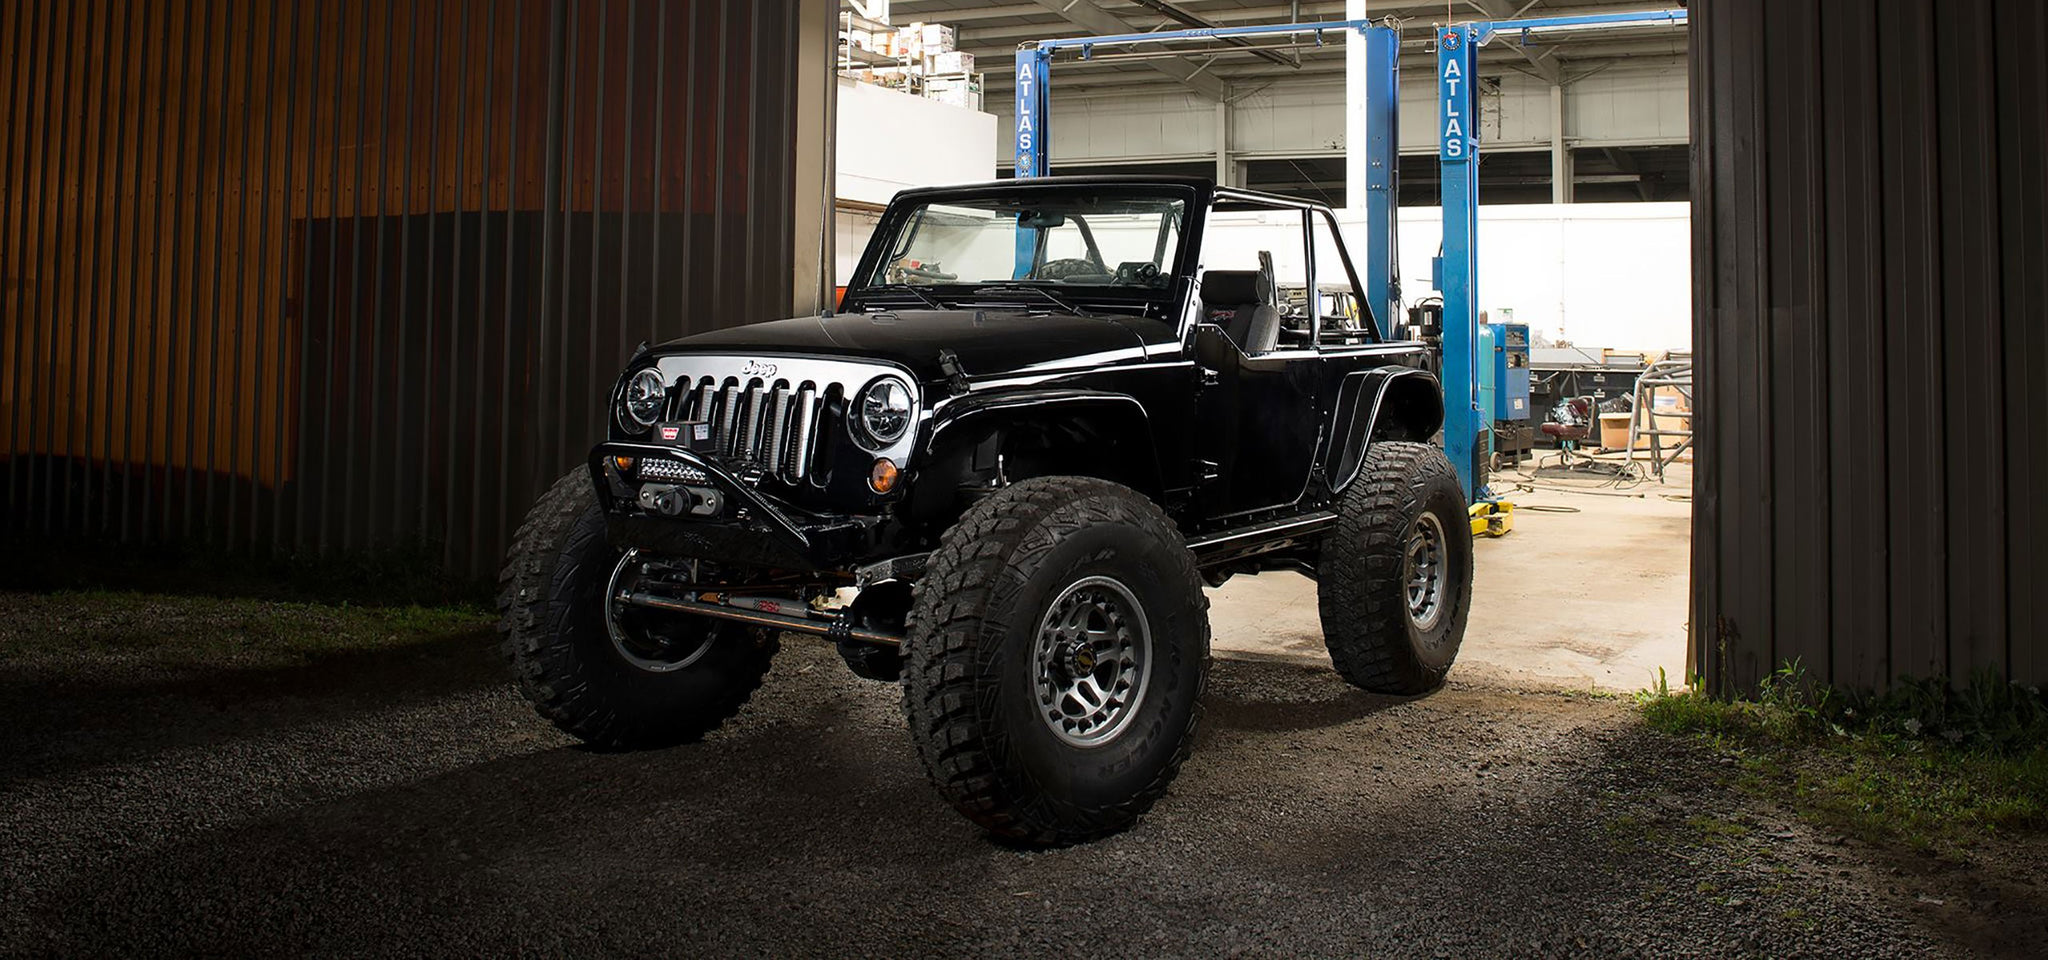 Unlimited Offroad Centers Jeep Accessories And Upgrades